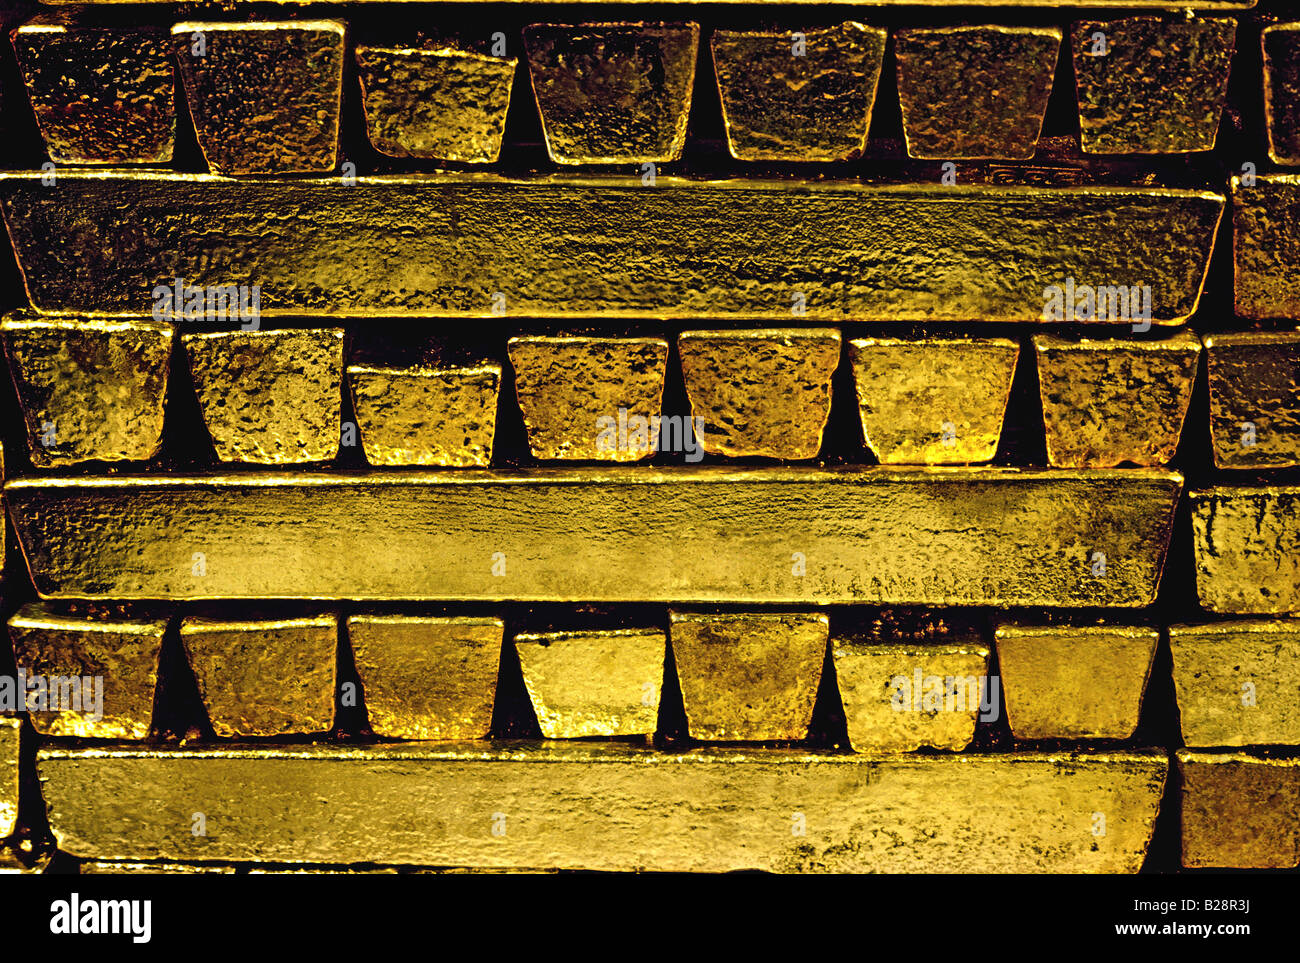 Traditionally shaped pure raw gold bars stacked in a secure bullion room safe - Stock Image